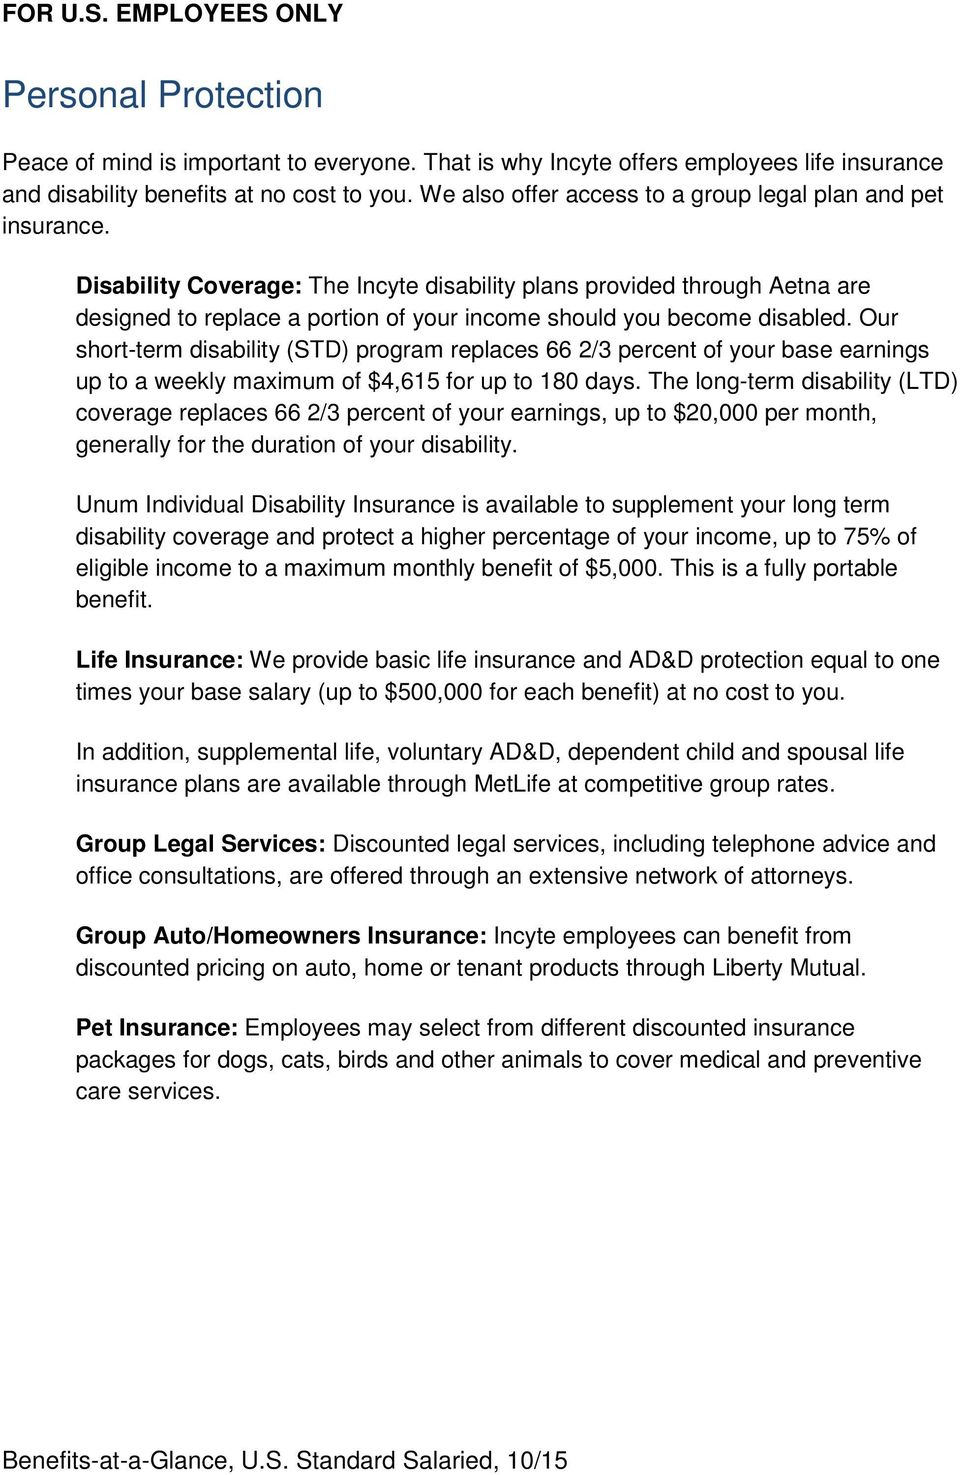 Disability Coverage: The Incyte disability plans provided through Aetna are designed to replace a portion of your income should you become disabled.